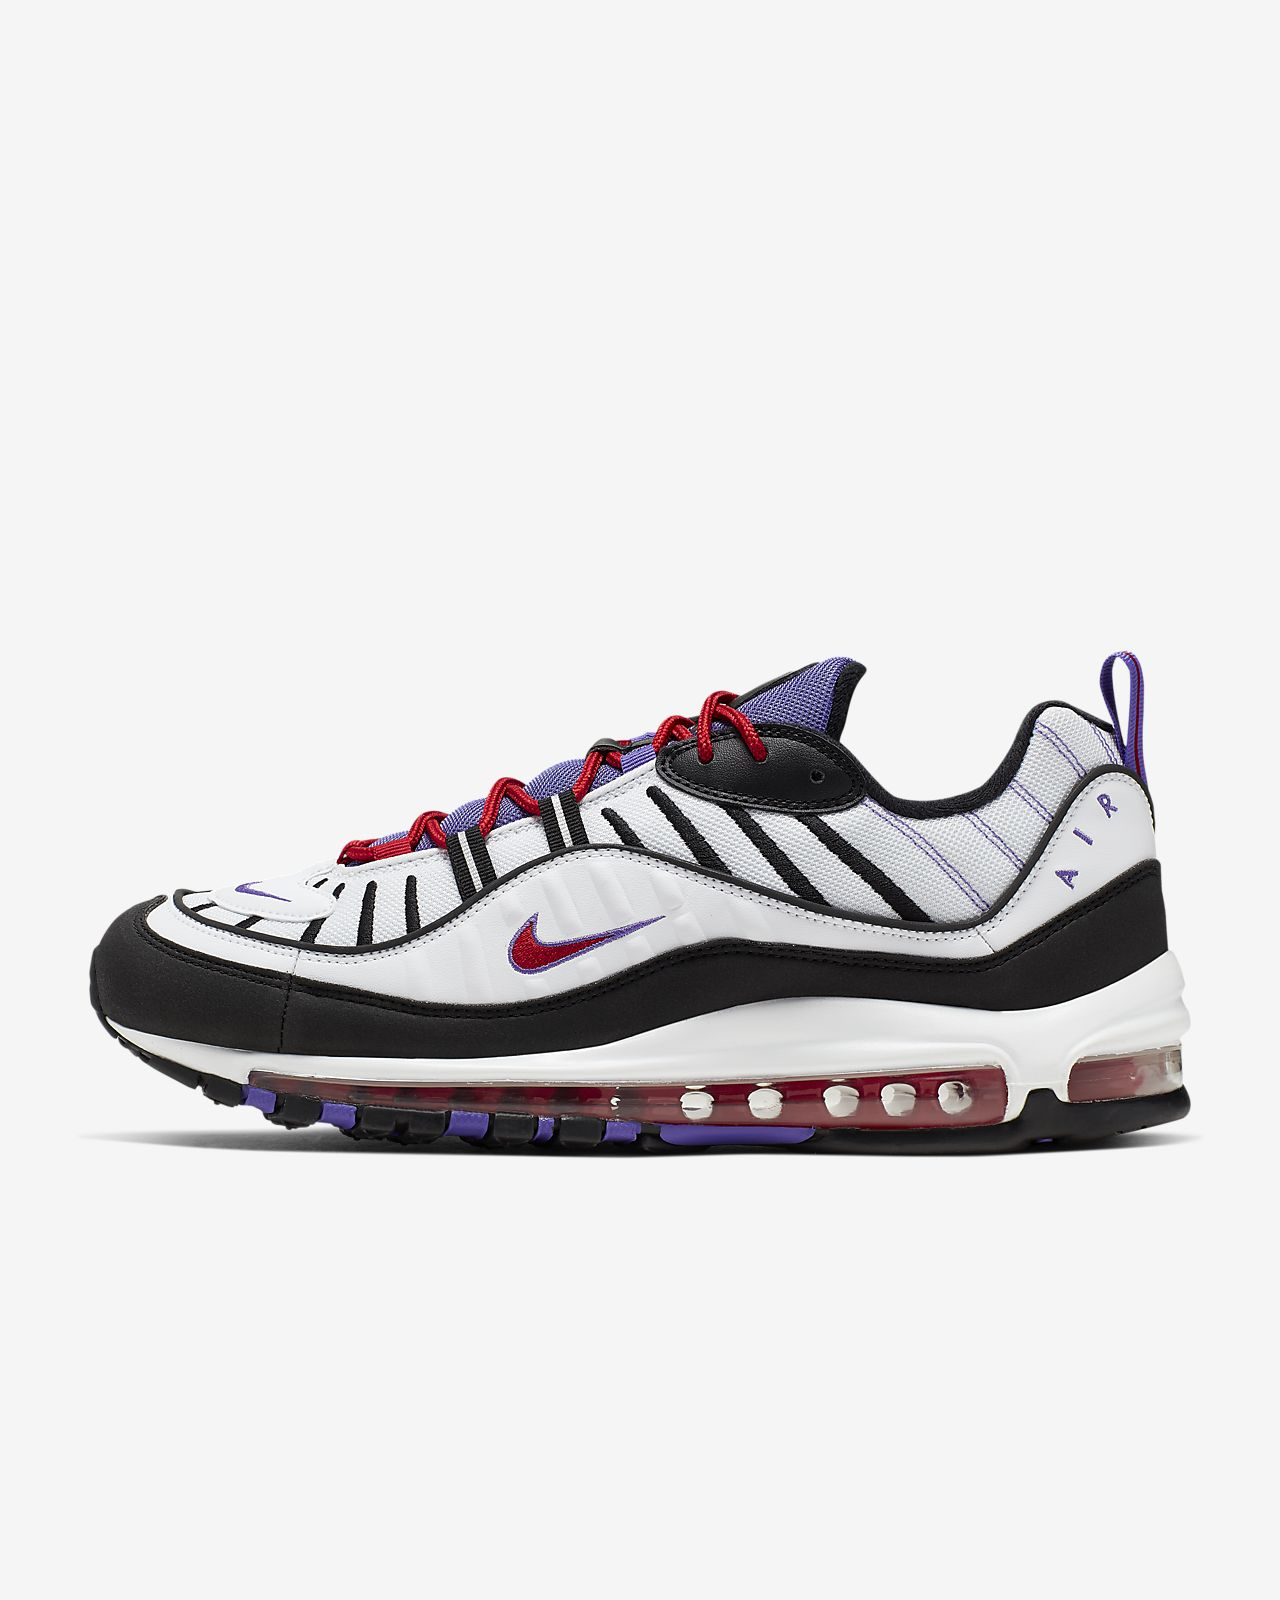 nike air max 98 white blue orange & black